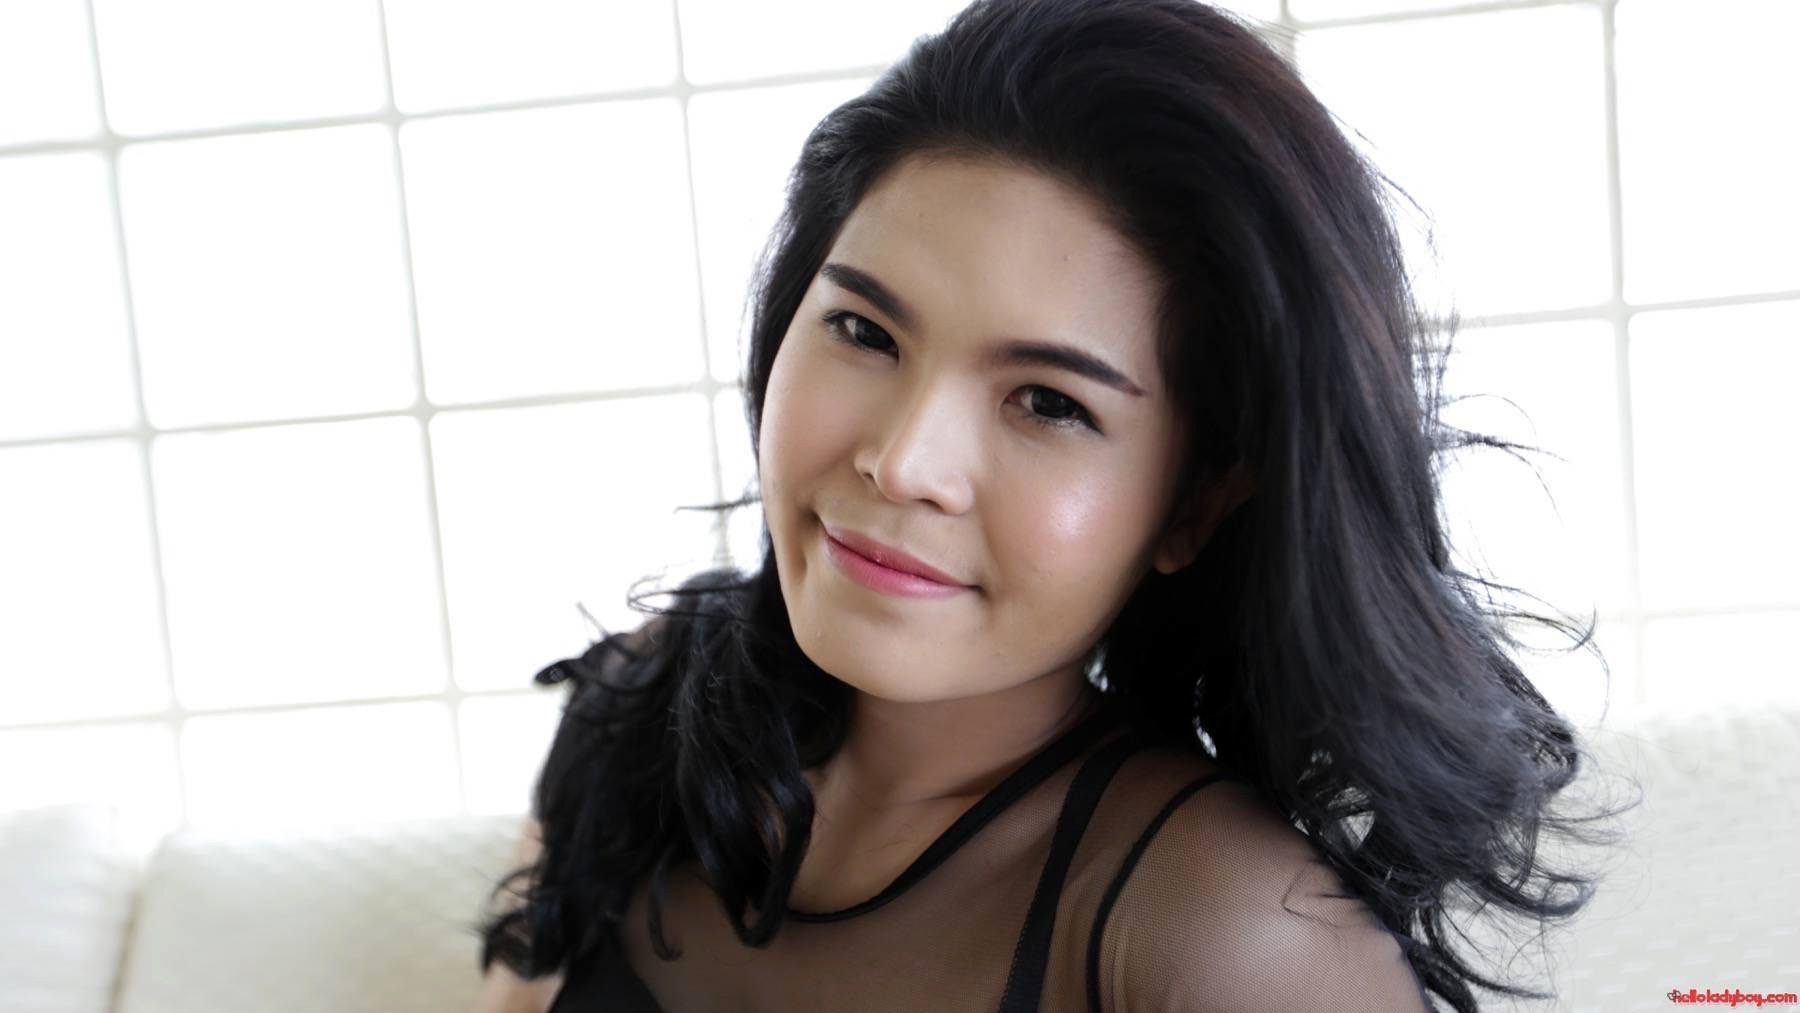 23 Year Old Naughty Asian Ts With Raven Hair Andfake Breasts Striptease